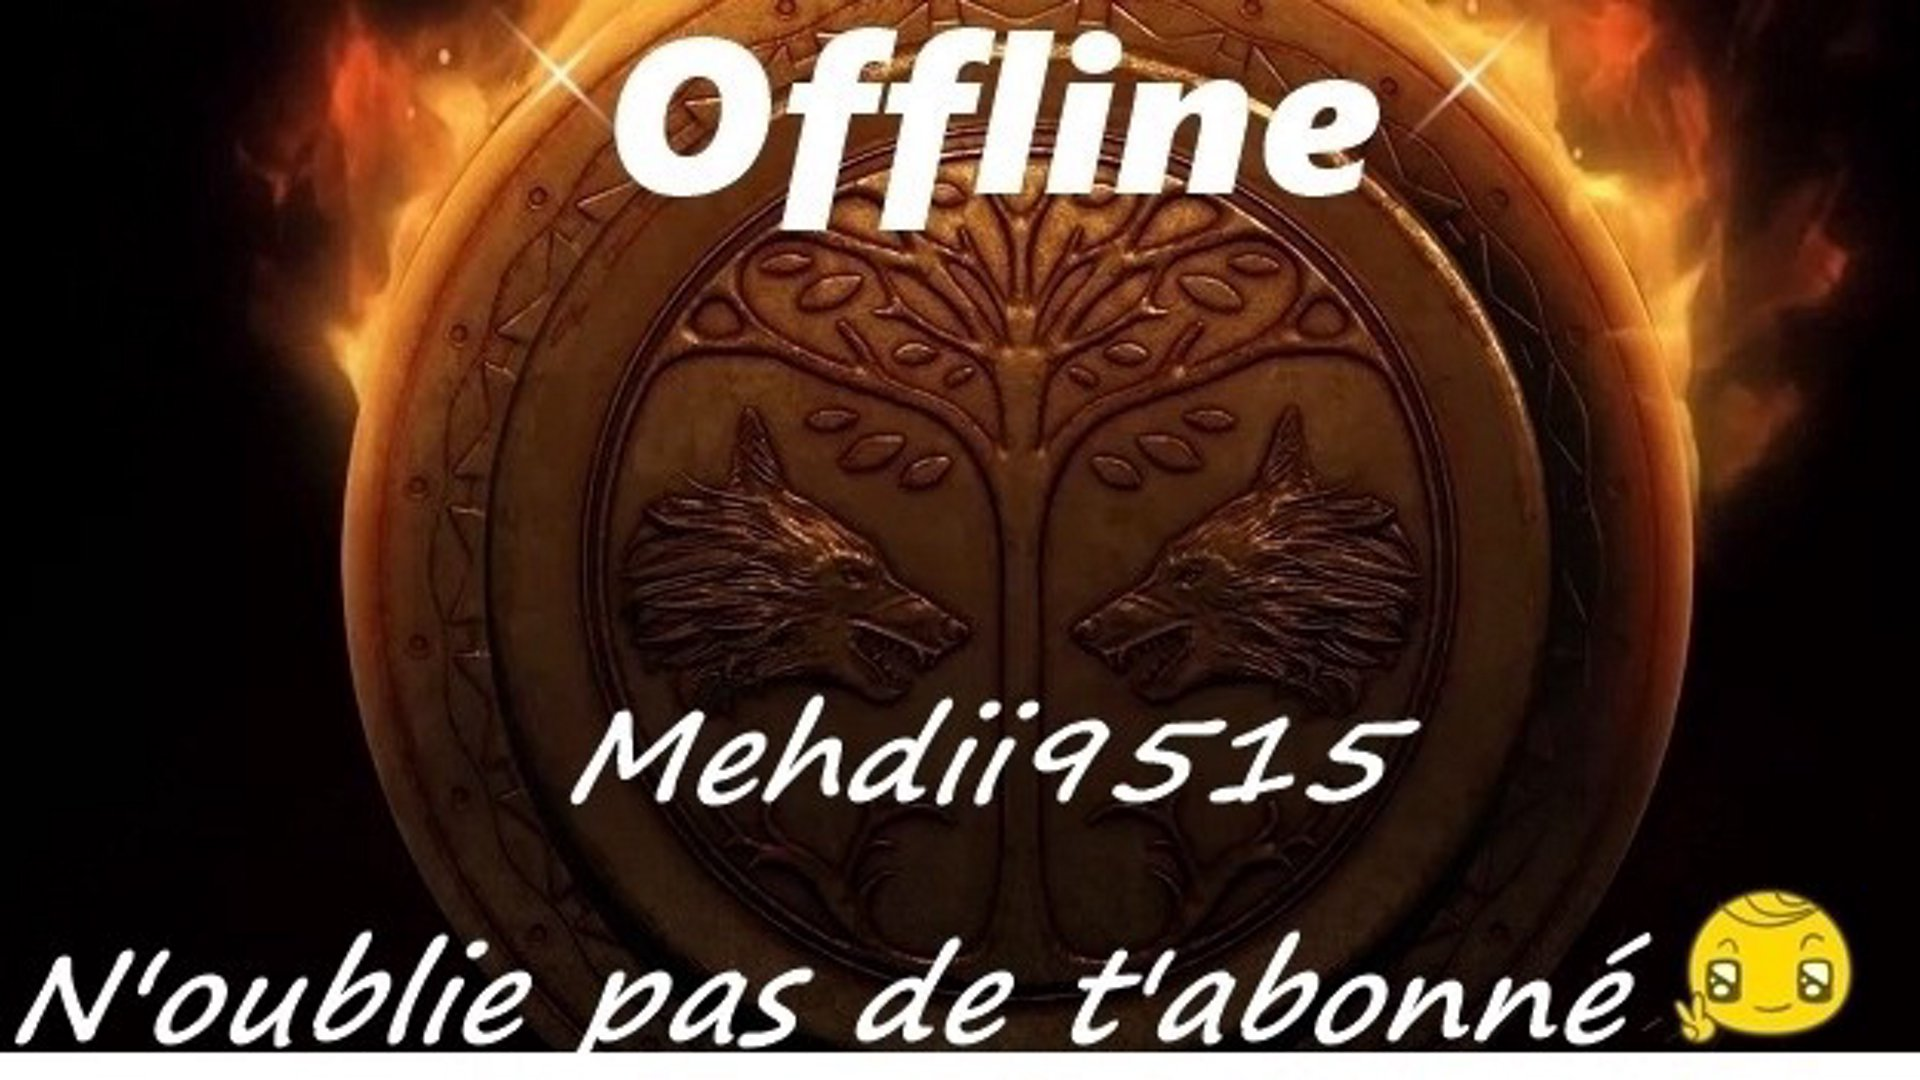 Offline channel image